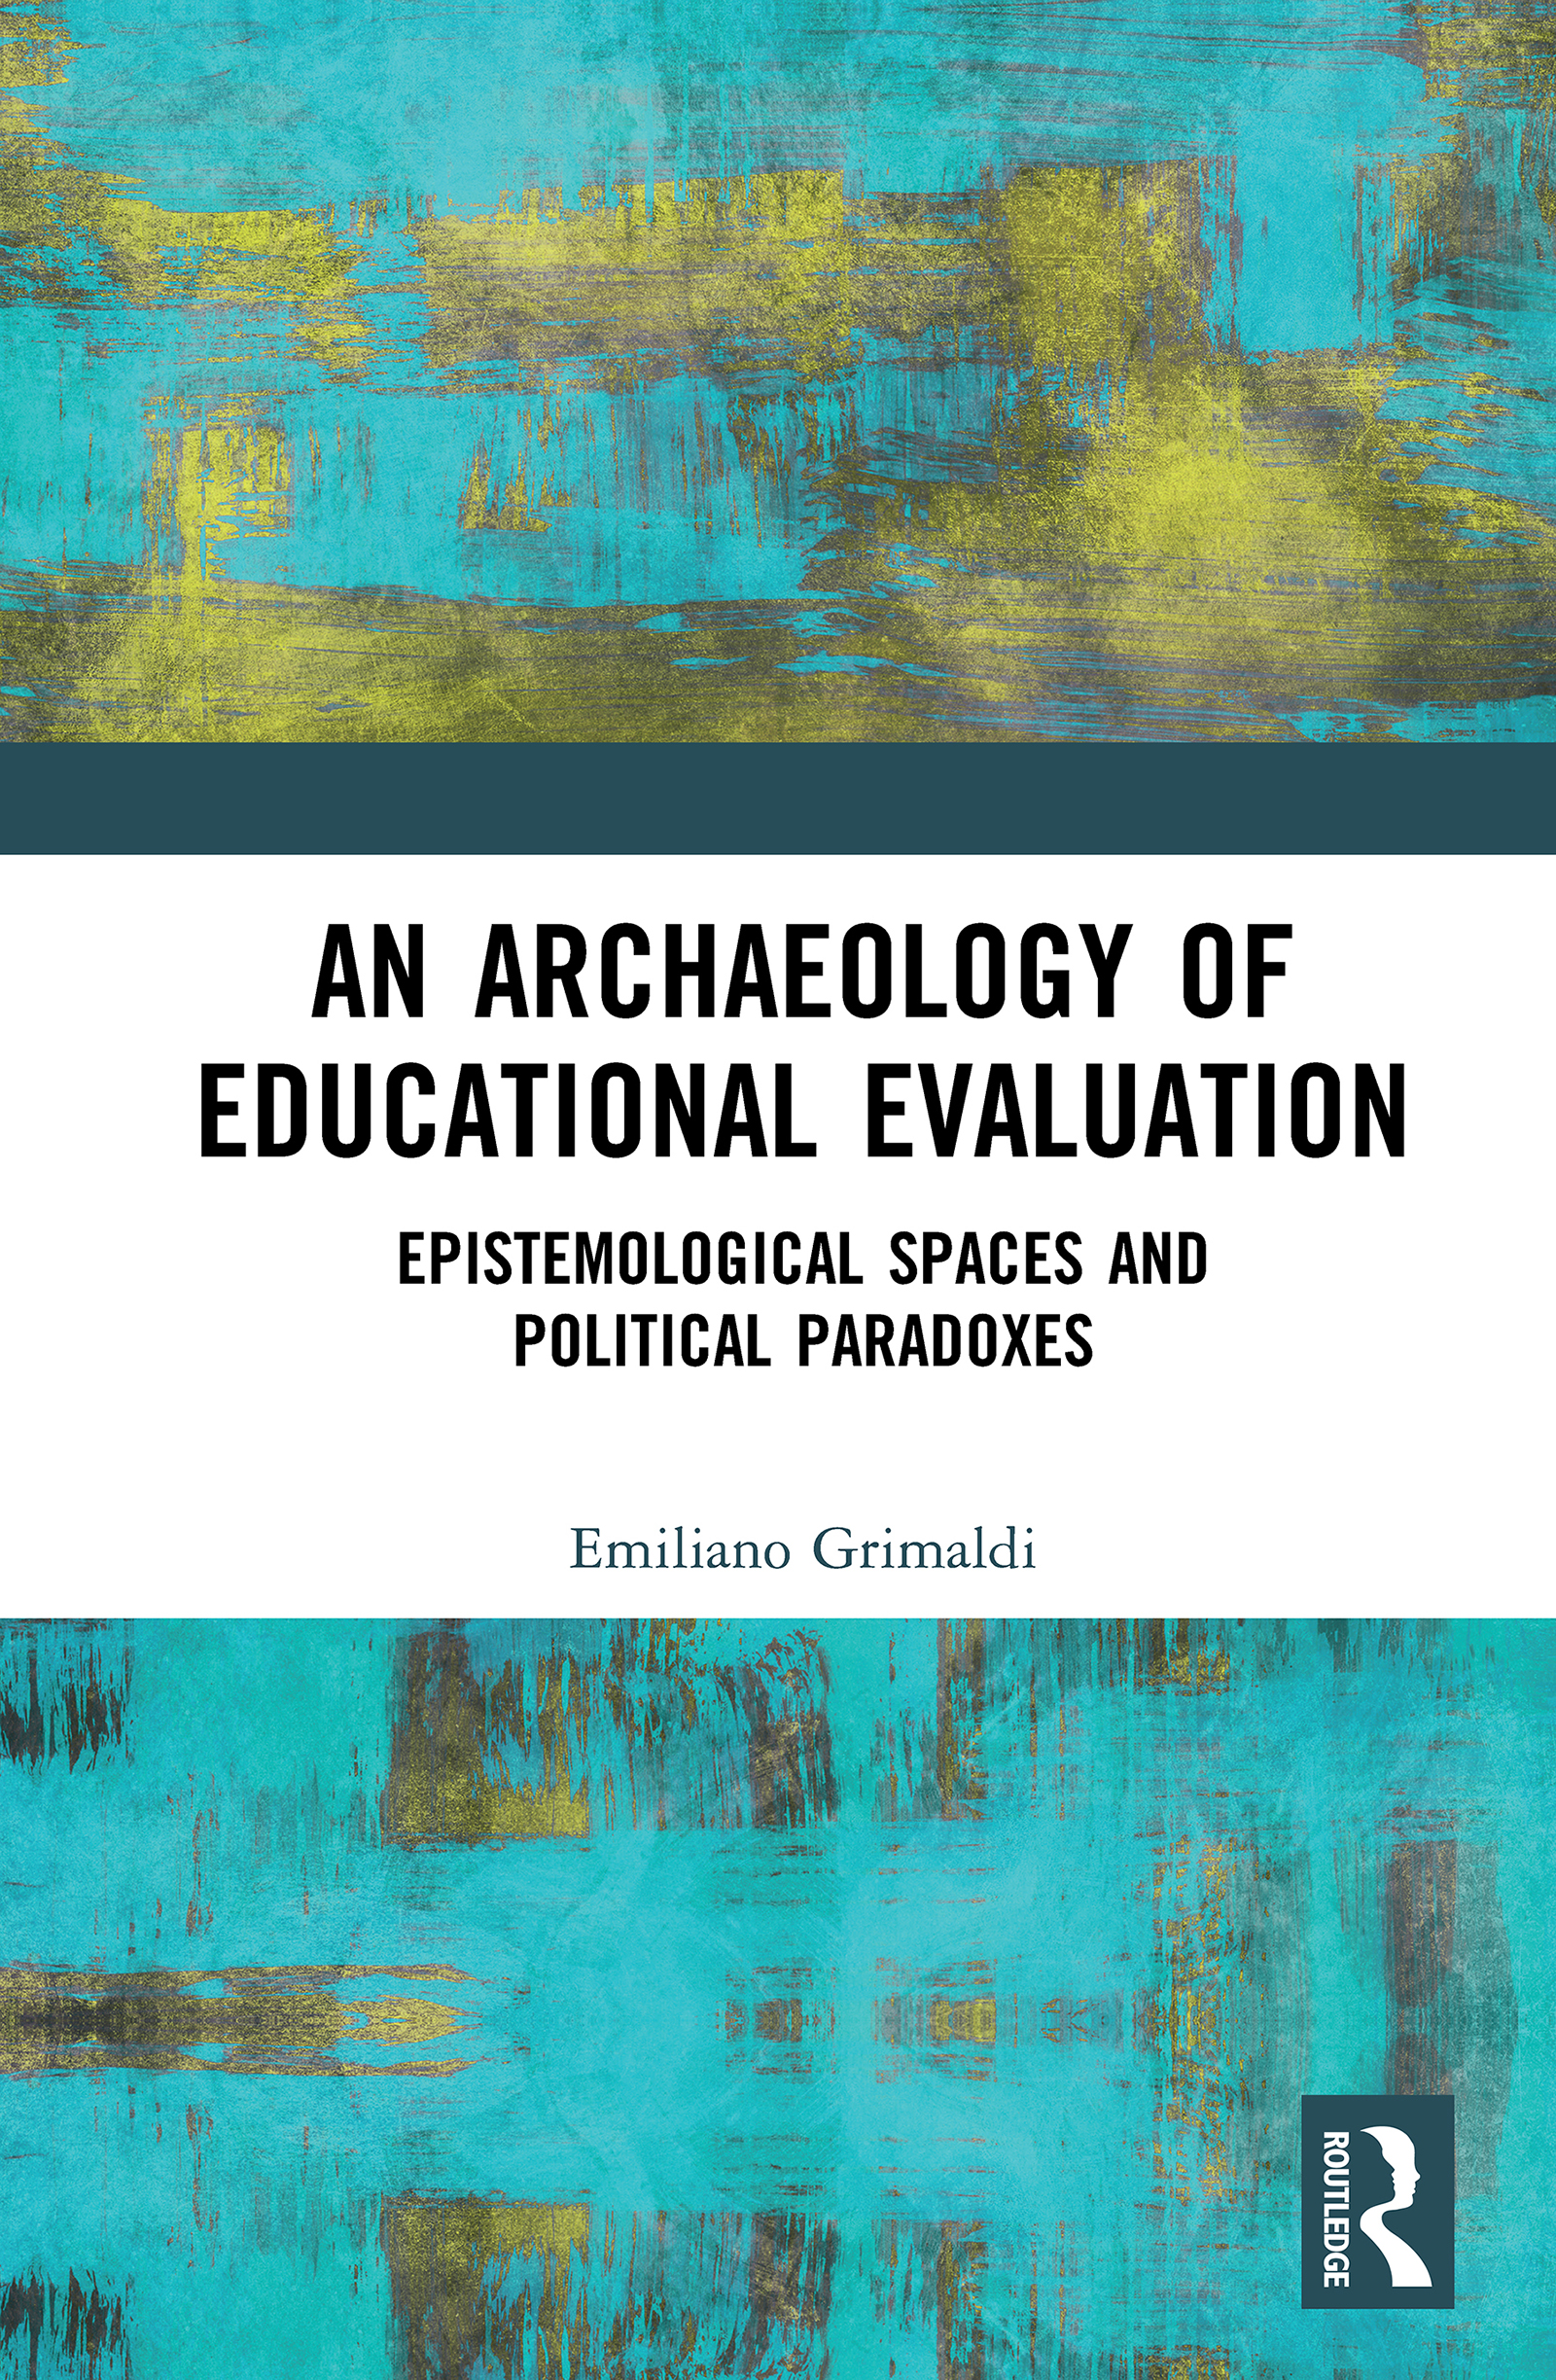 An Archaeology of Educational Evaluation: Epistemological Spaces and Political Paradoxes book cover